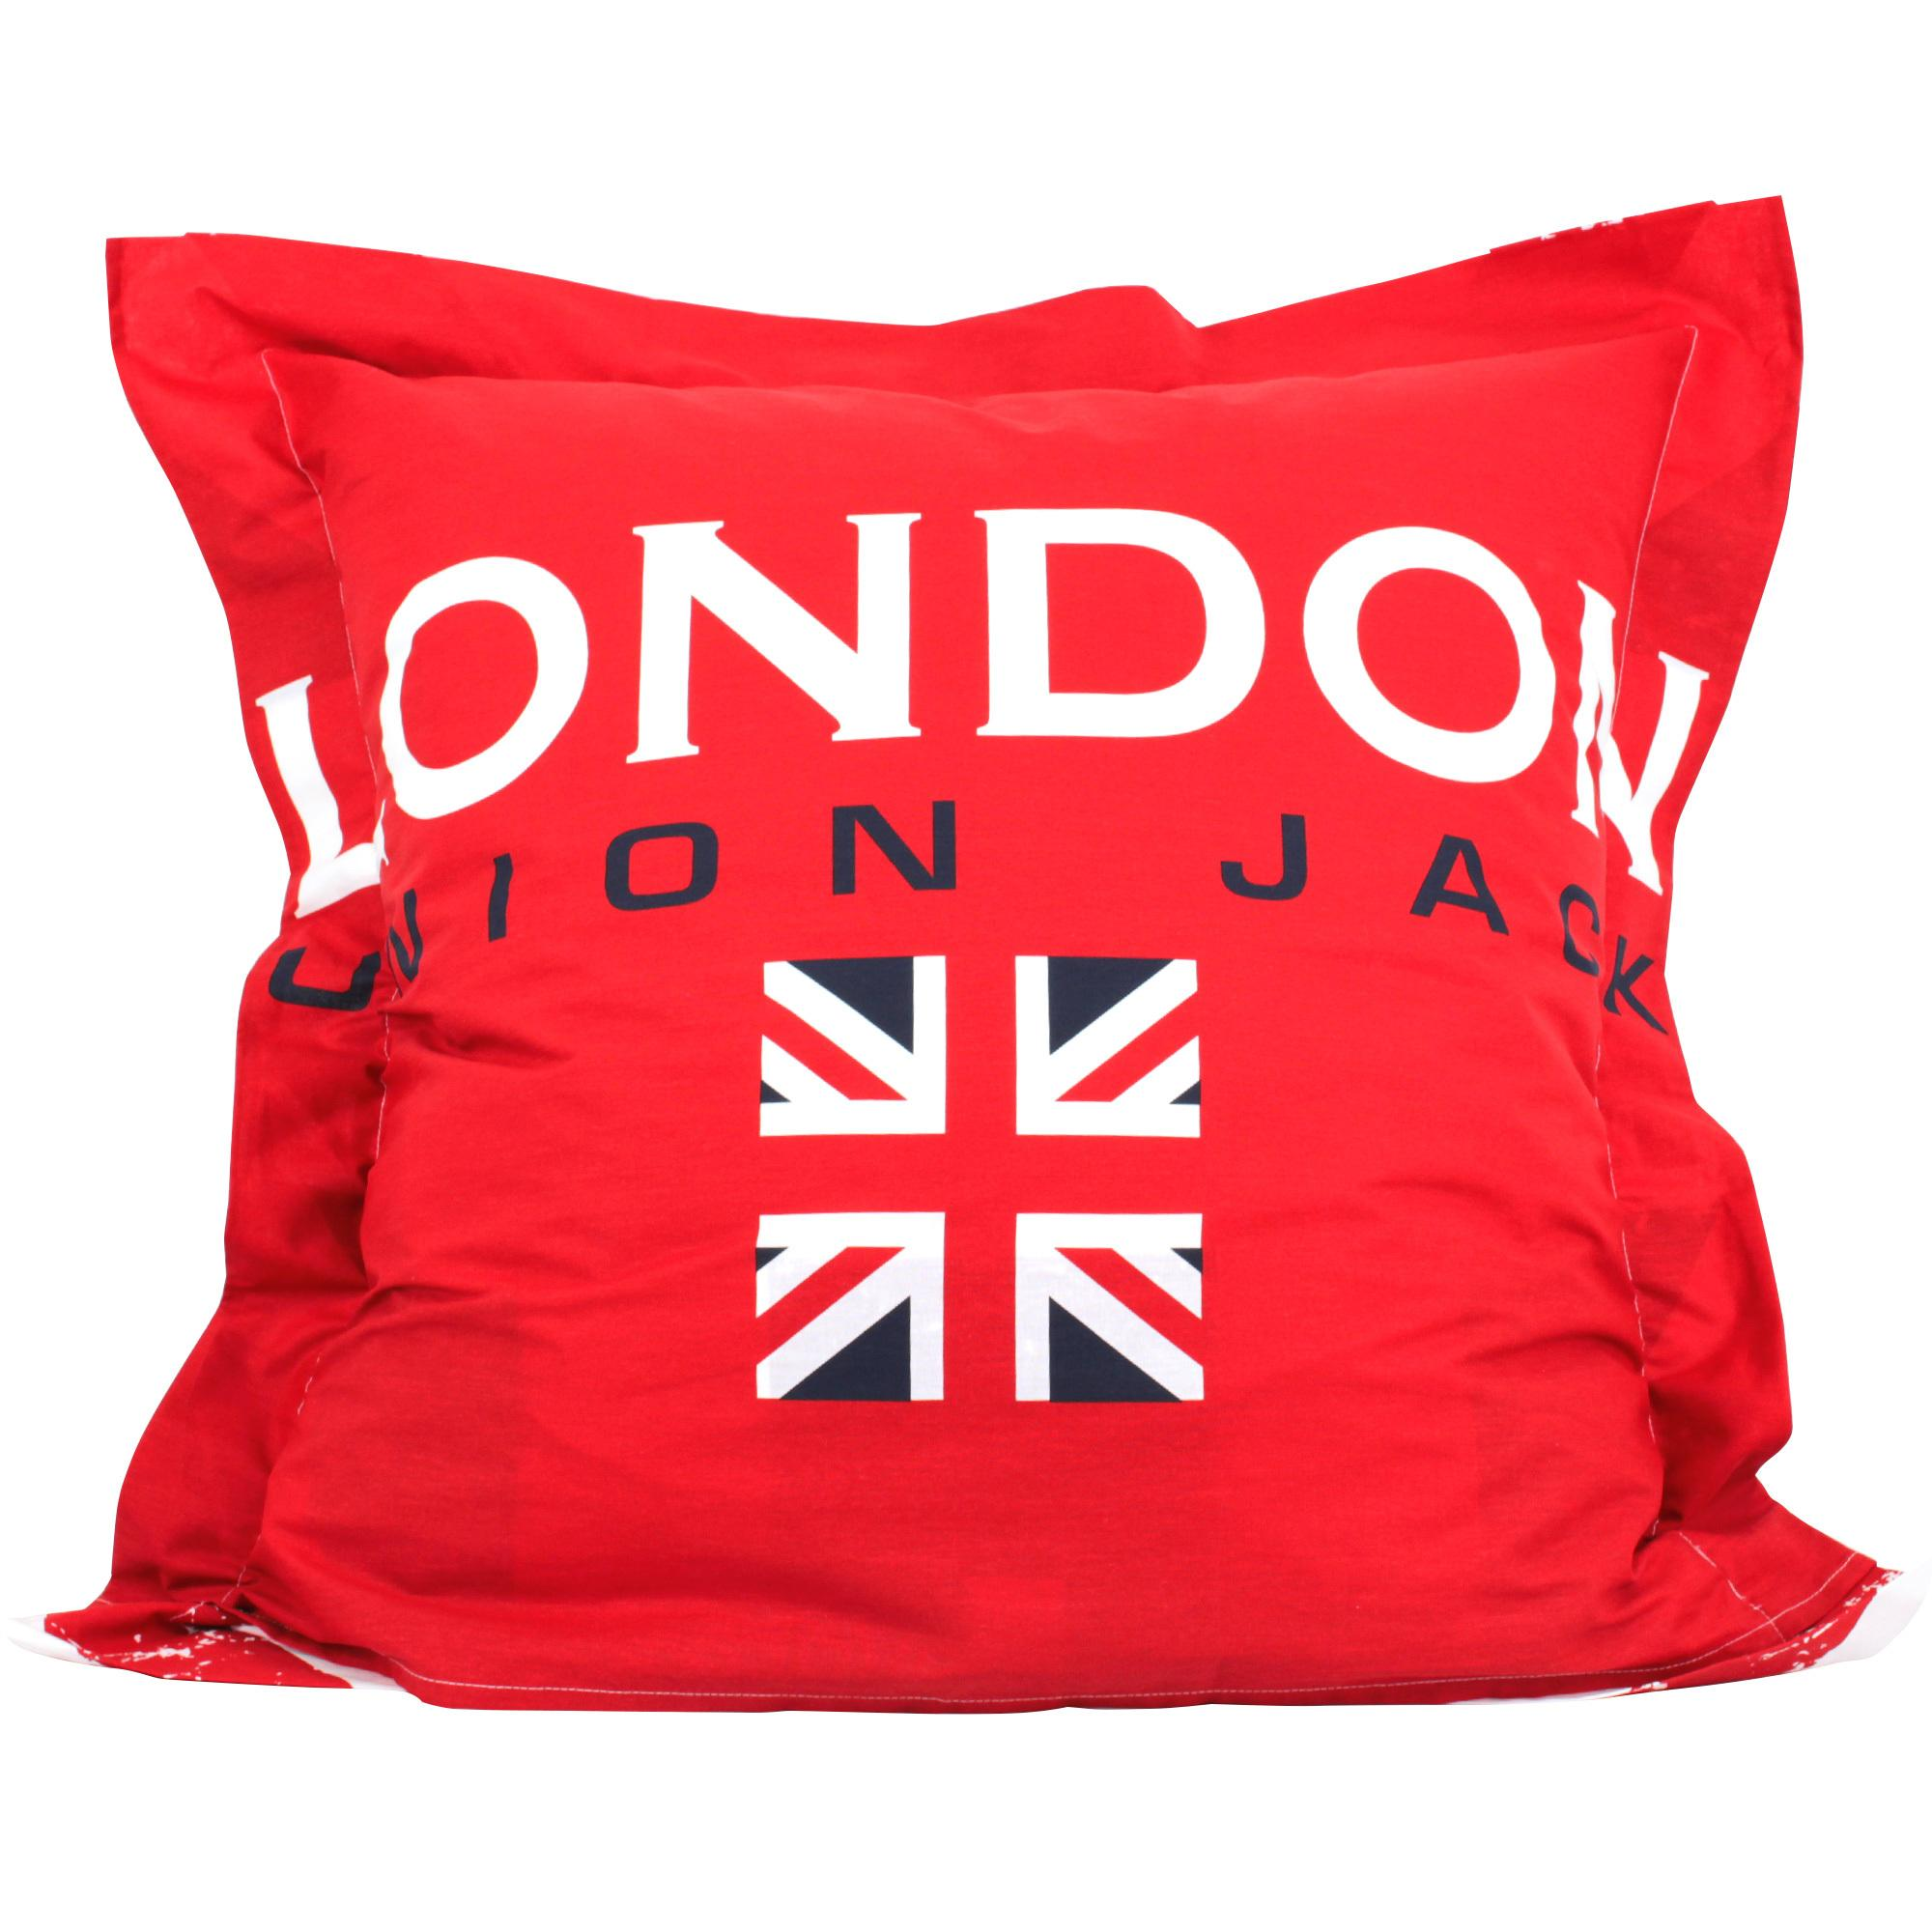 parure de lit 200x200 cm london union jack linnea vente. Black Bedroom Furniture Sets. Home Design Ideas